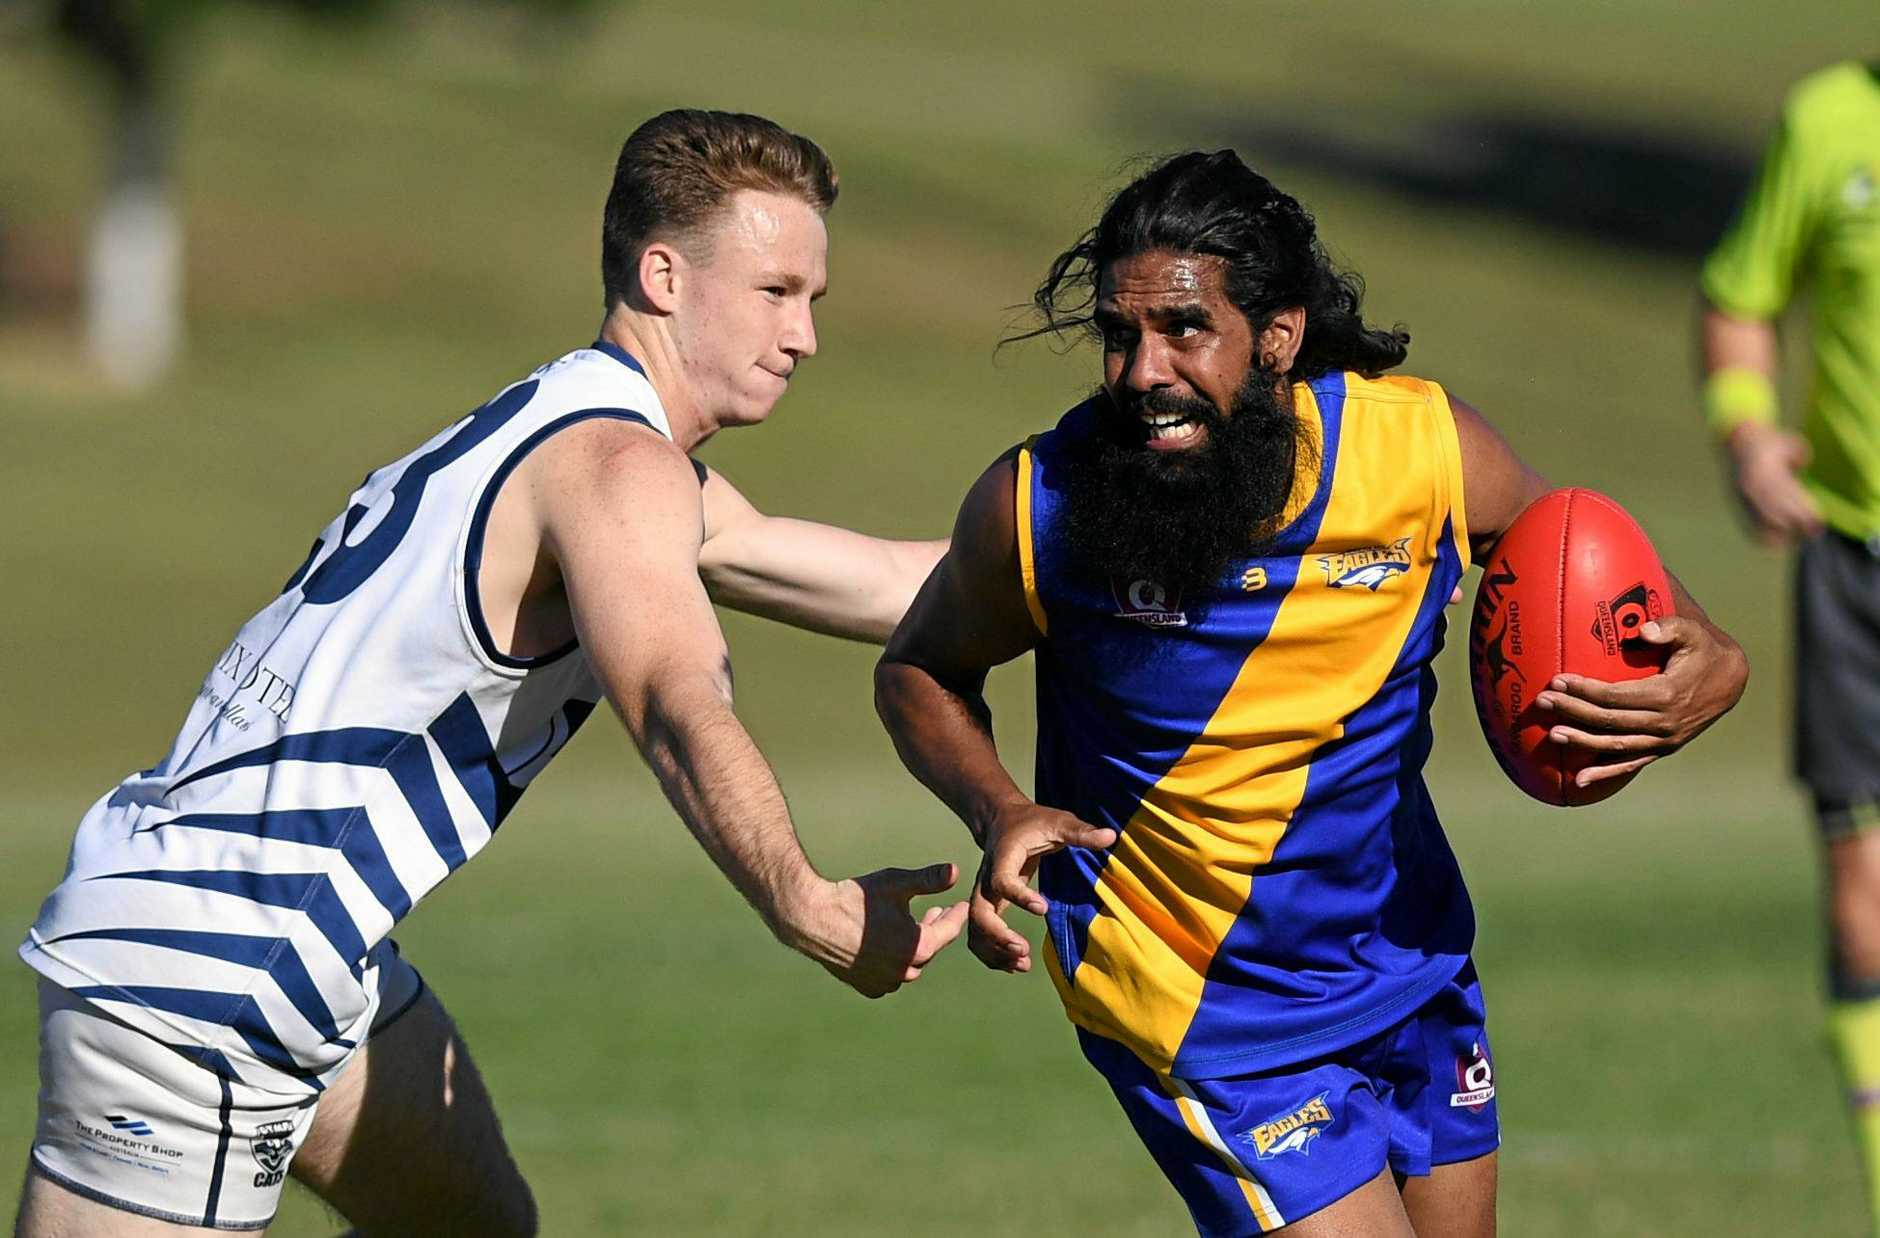 Ipswich Eagles player Kapun Morris looks to fend off a Gympie chaser in last weekend's win at Limestone Park.